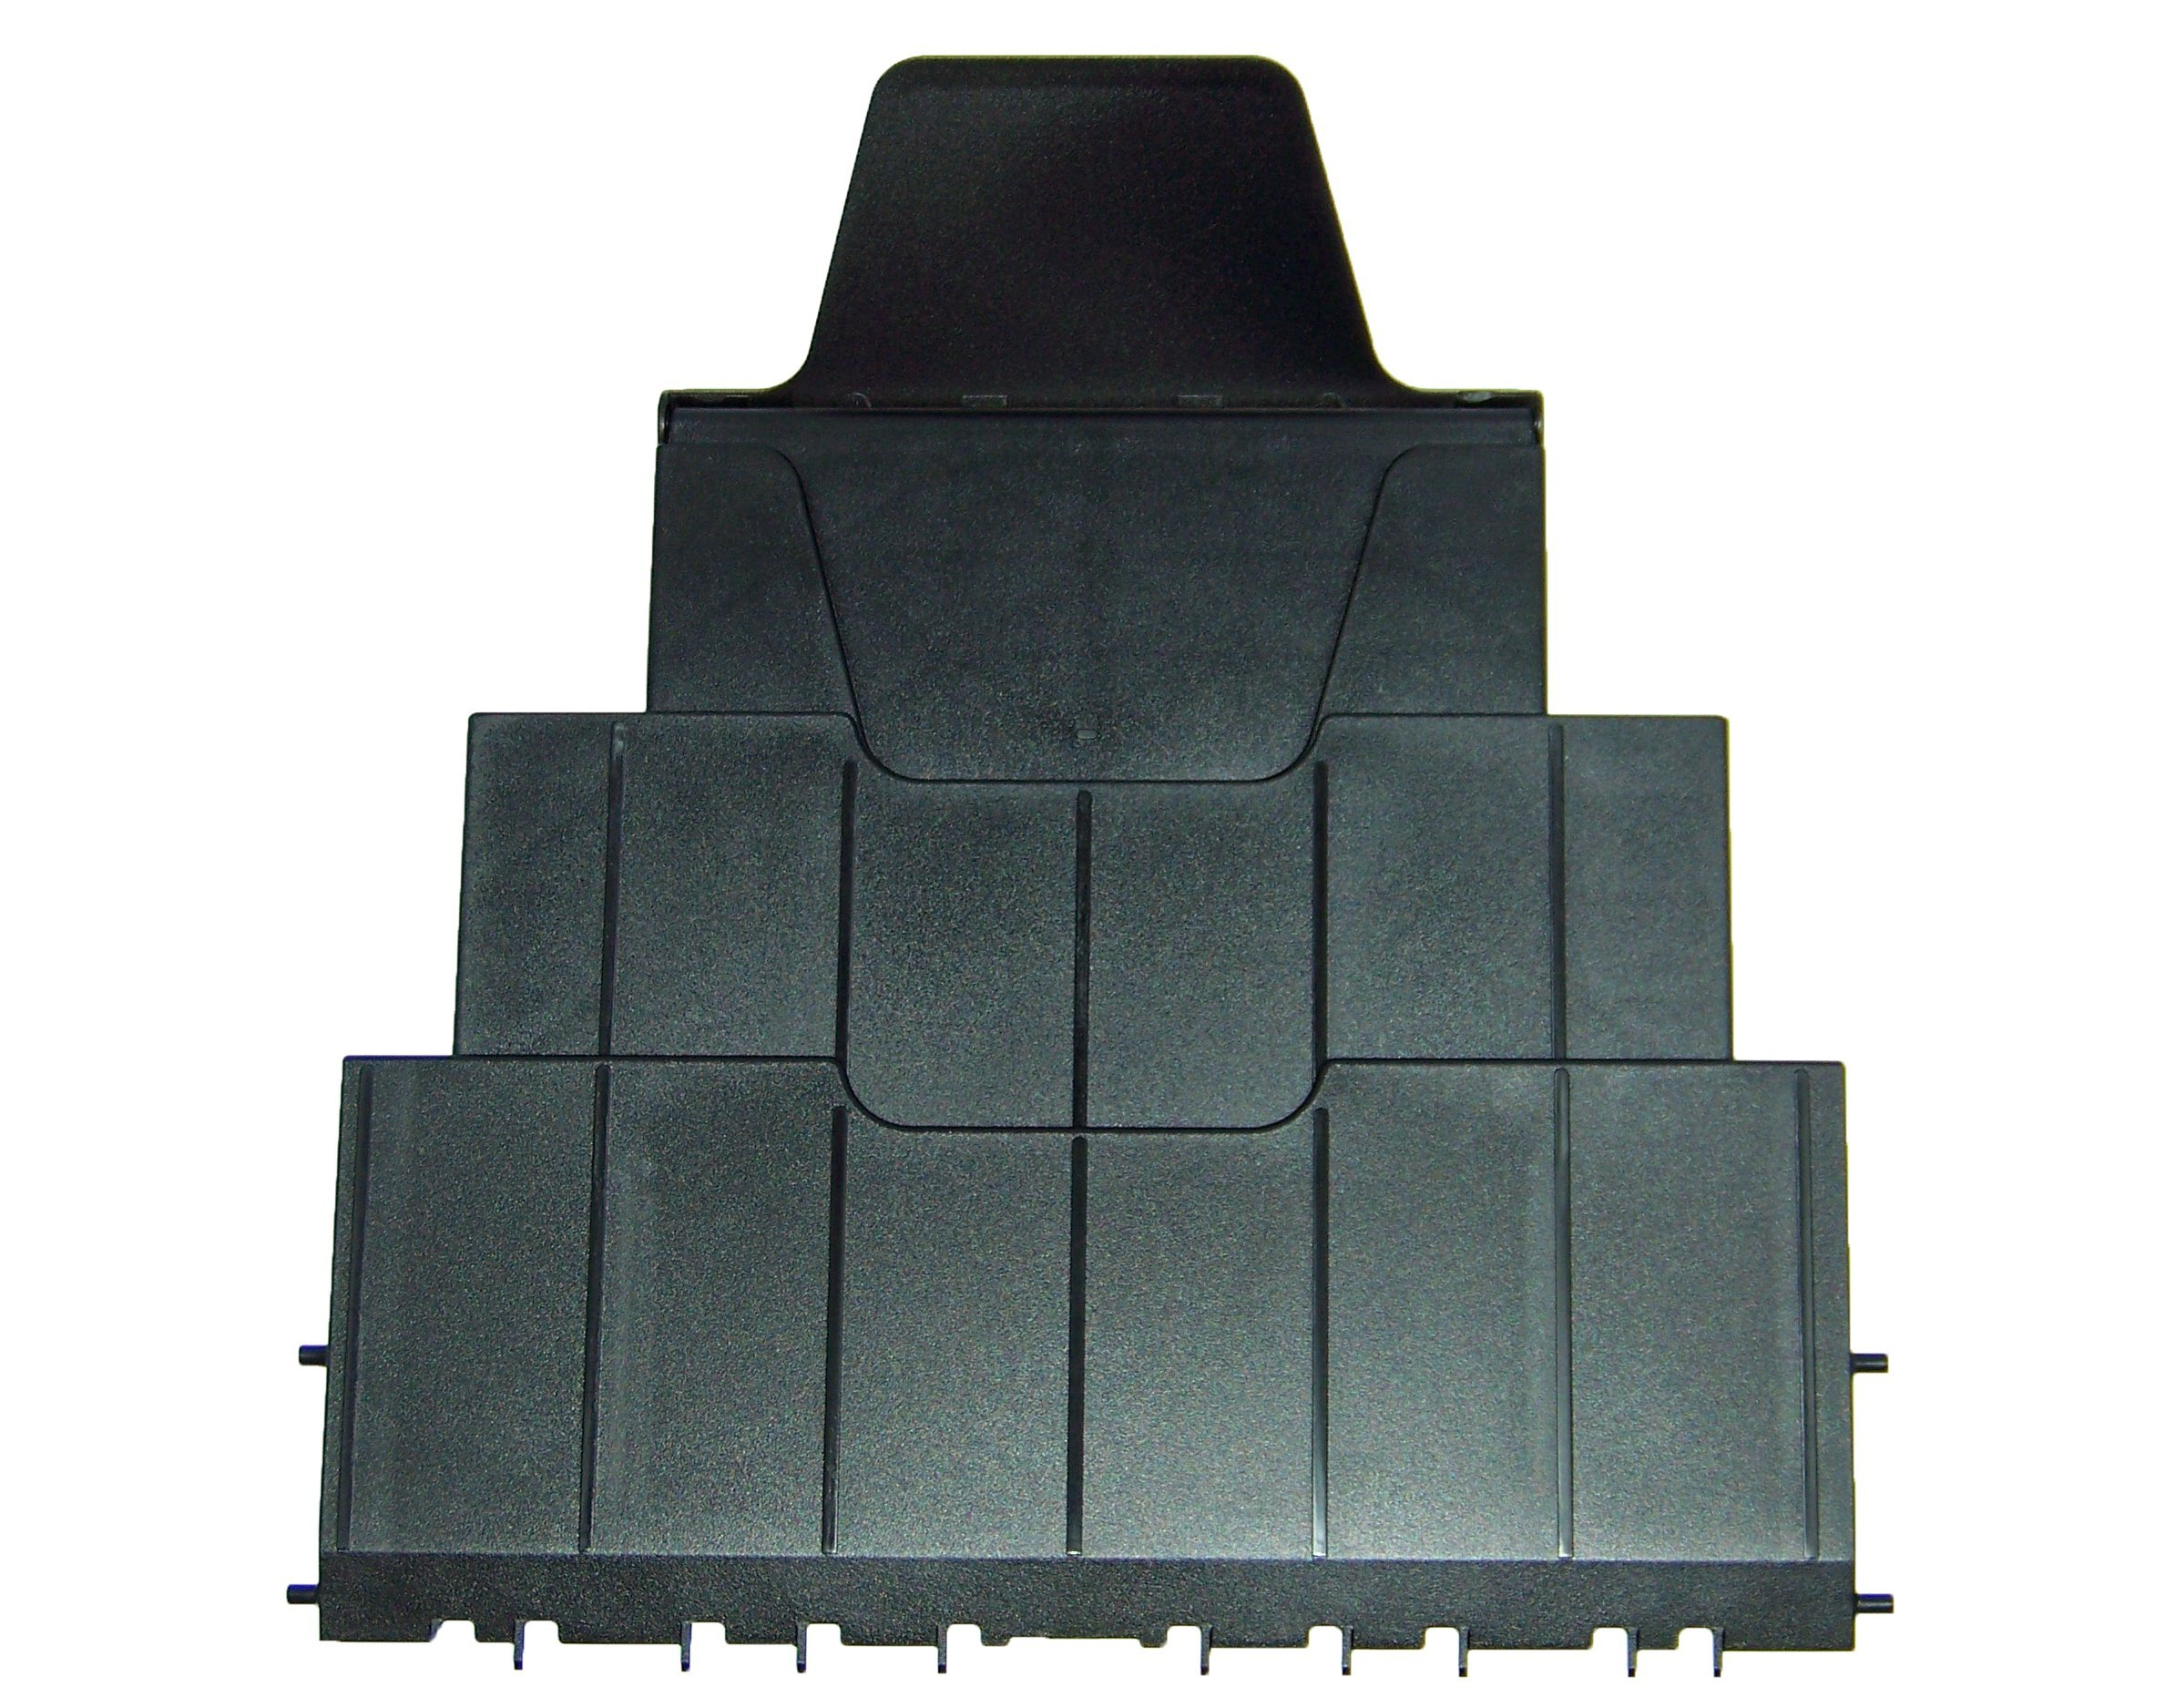 OEM Epson Stacker Assembly / Output Tray Specifically For: EcoTank ET-4550, WorkForce WF-2650, WorkForce WF-2651, WorkForce WF-2660, WorkForce WF-2661